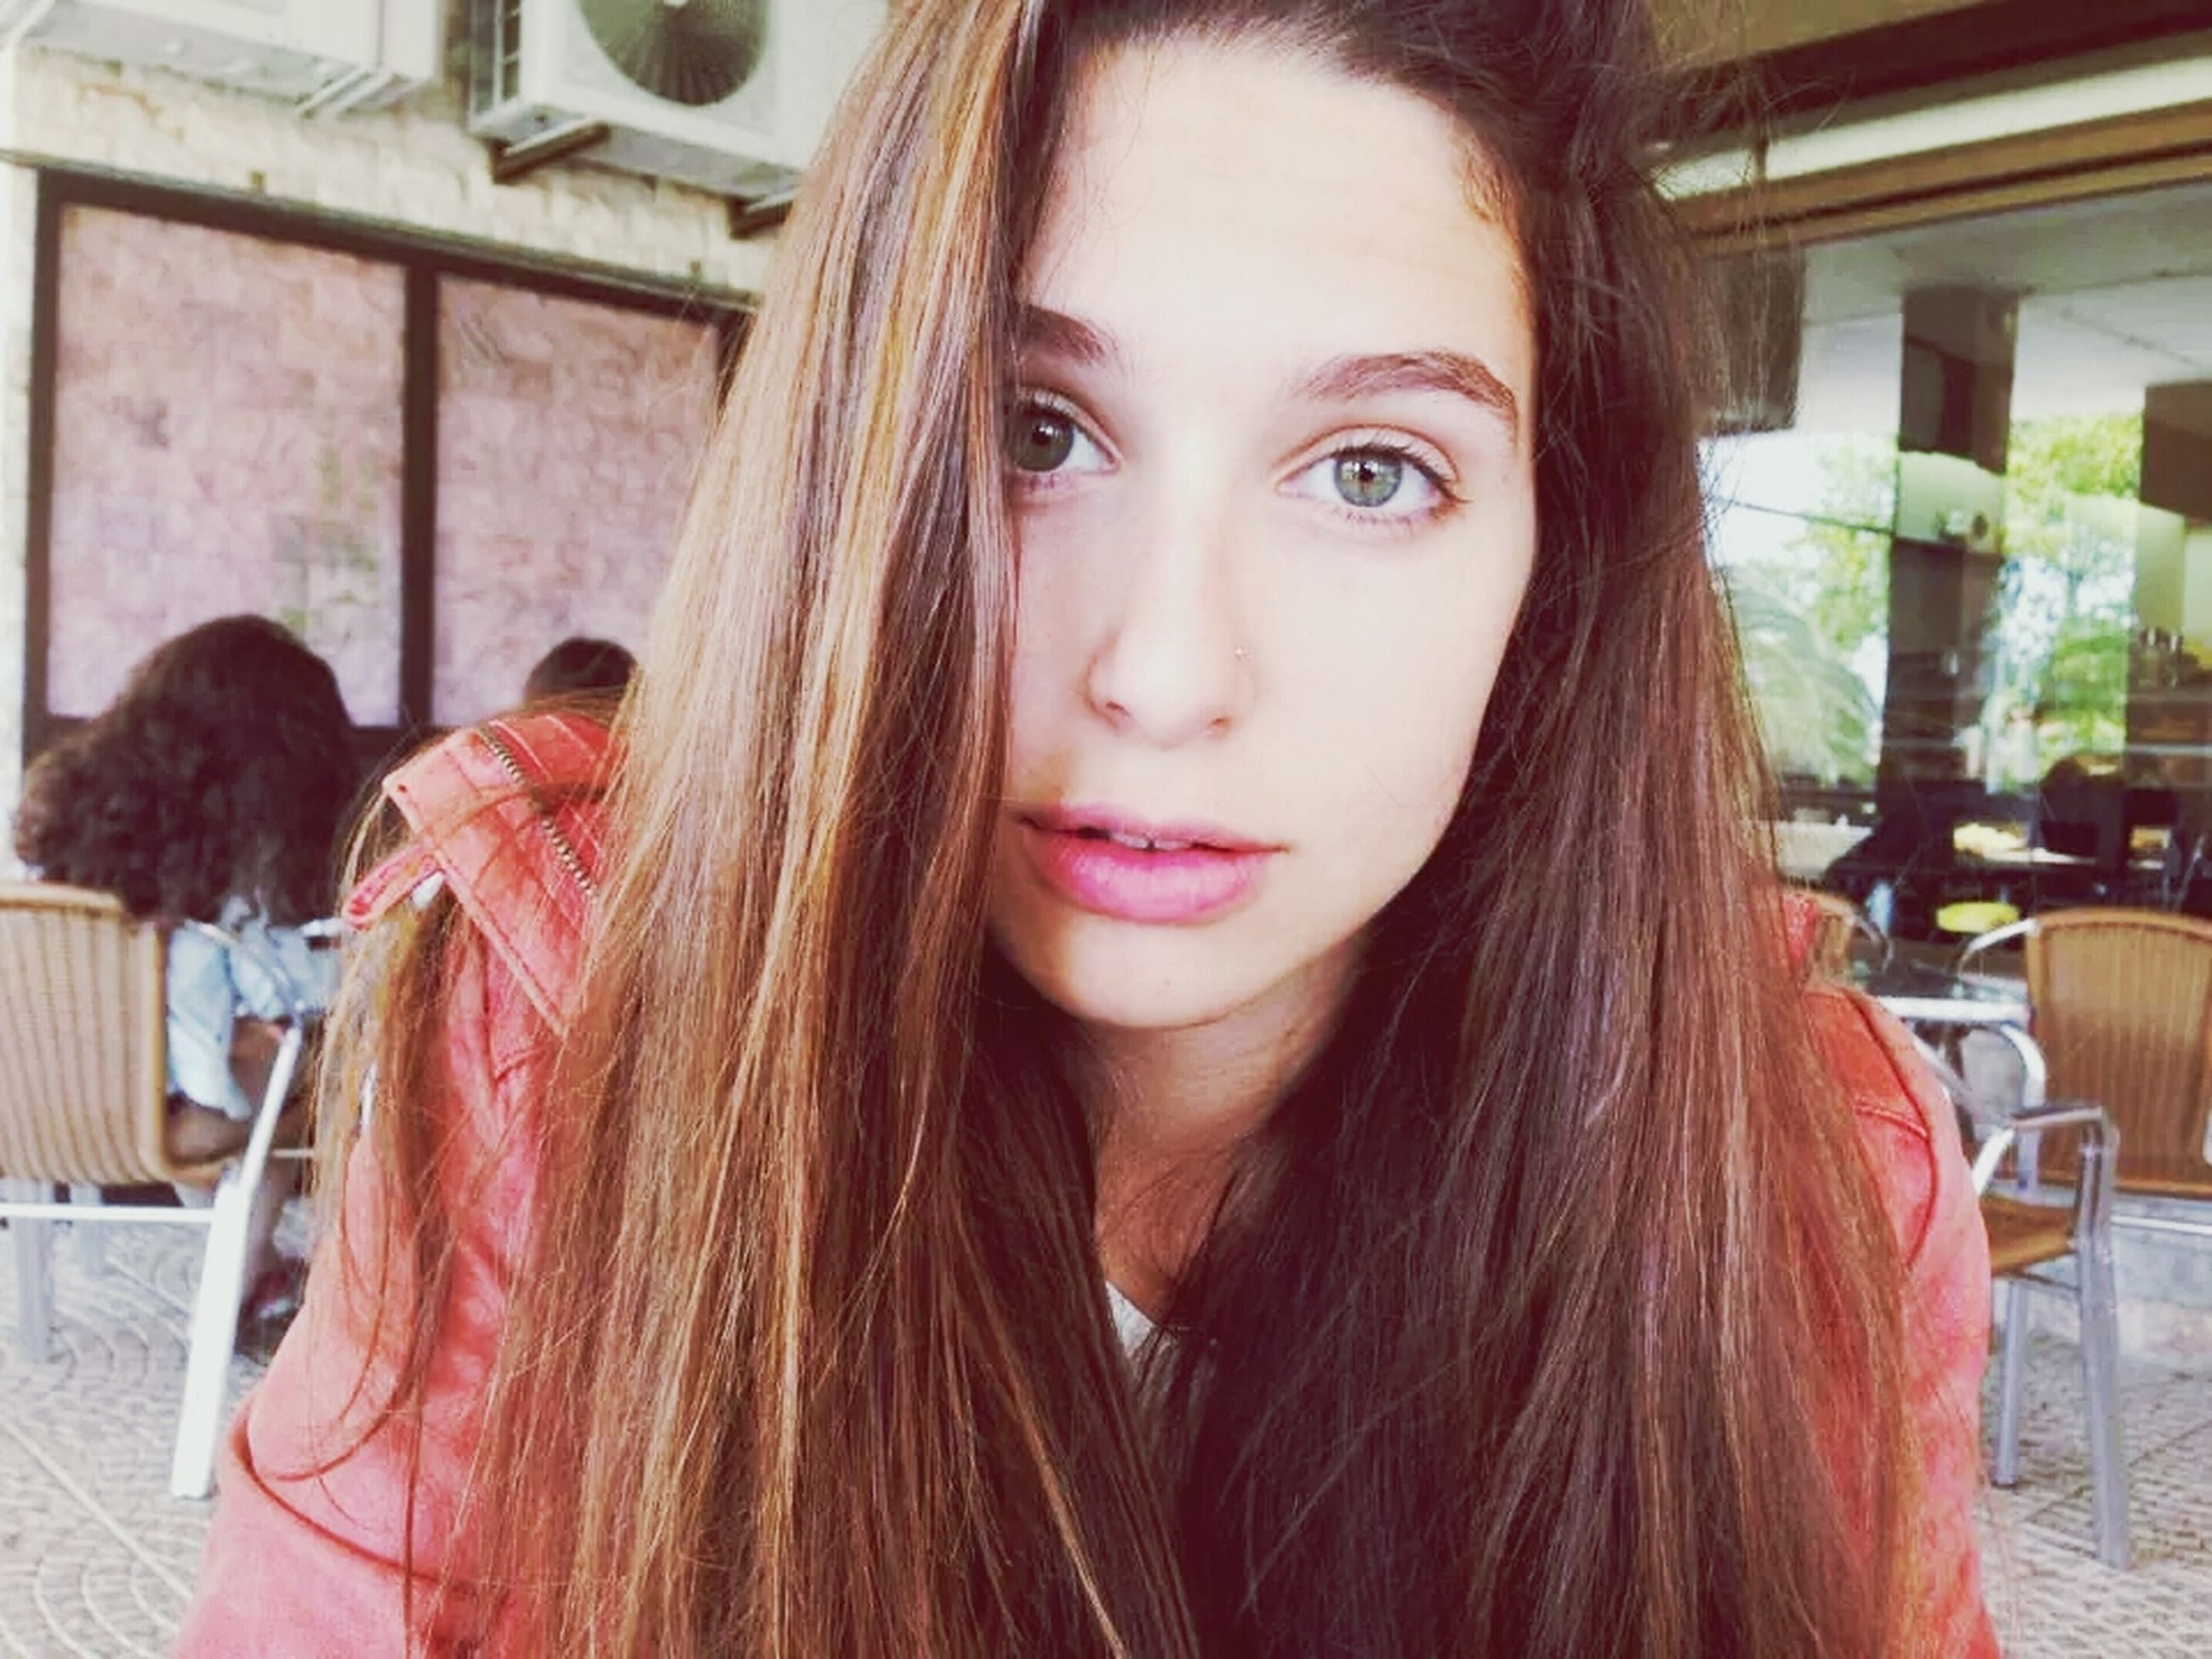 young women, long hair, young adult, person, lifestyles, portrait, headshot, looking at camera, leisure activity, front view, brown hair, smiling, casual clothing, black hair, medium-length hair, head and shoulders, focus on foreground